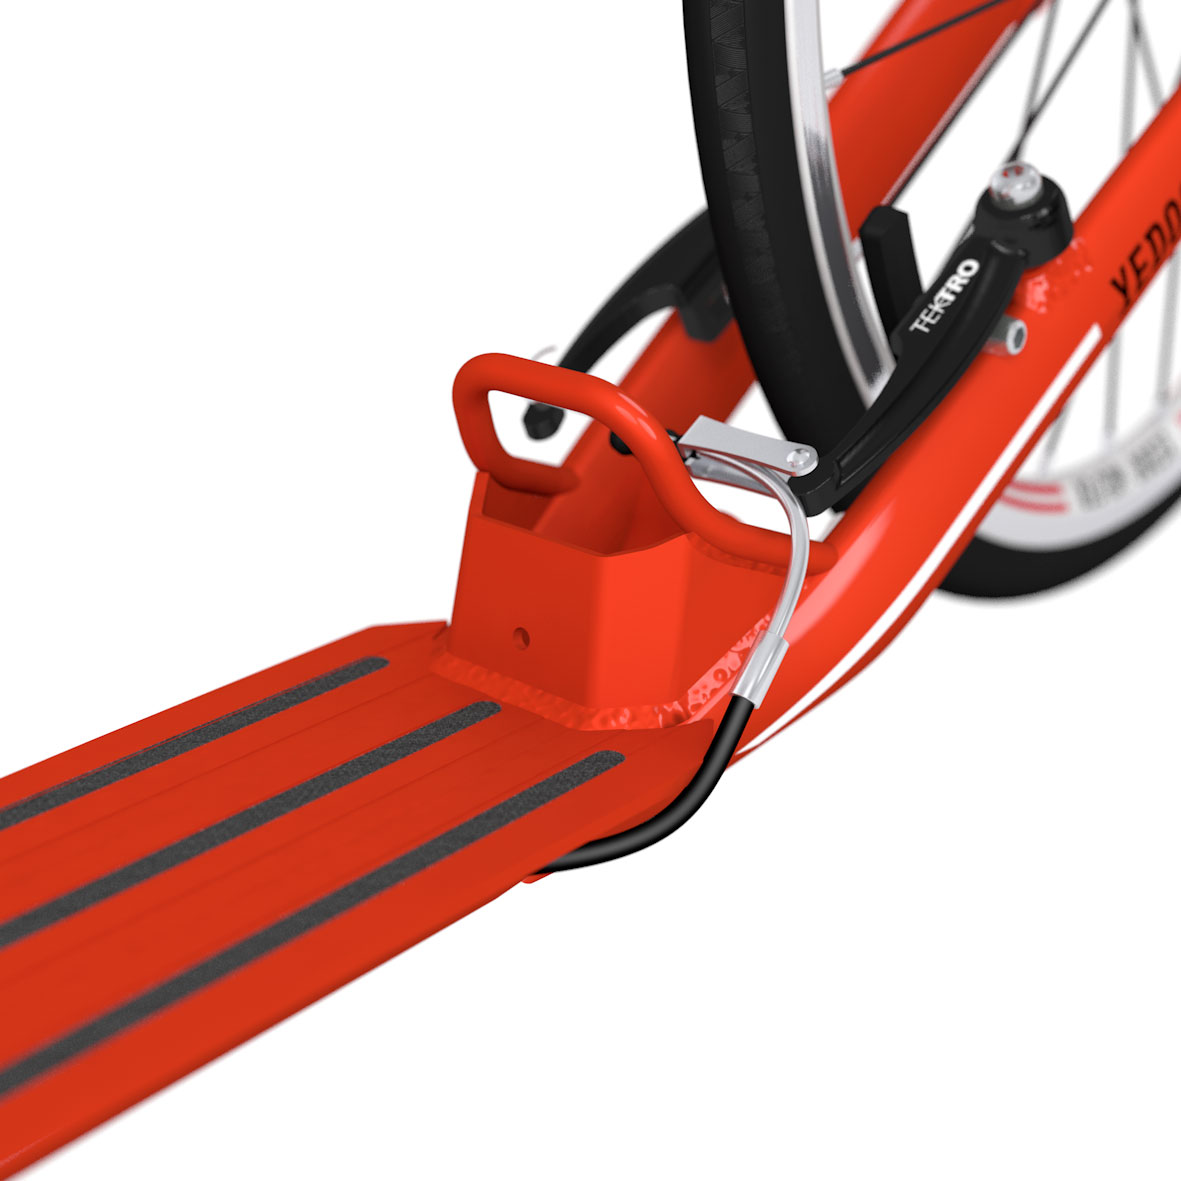 Adhesive anti-slip tapes, practical dropout, narrowed rear fork and bowden cable guided inside the frame.